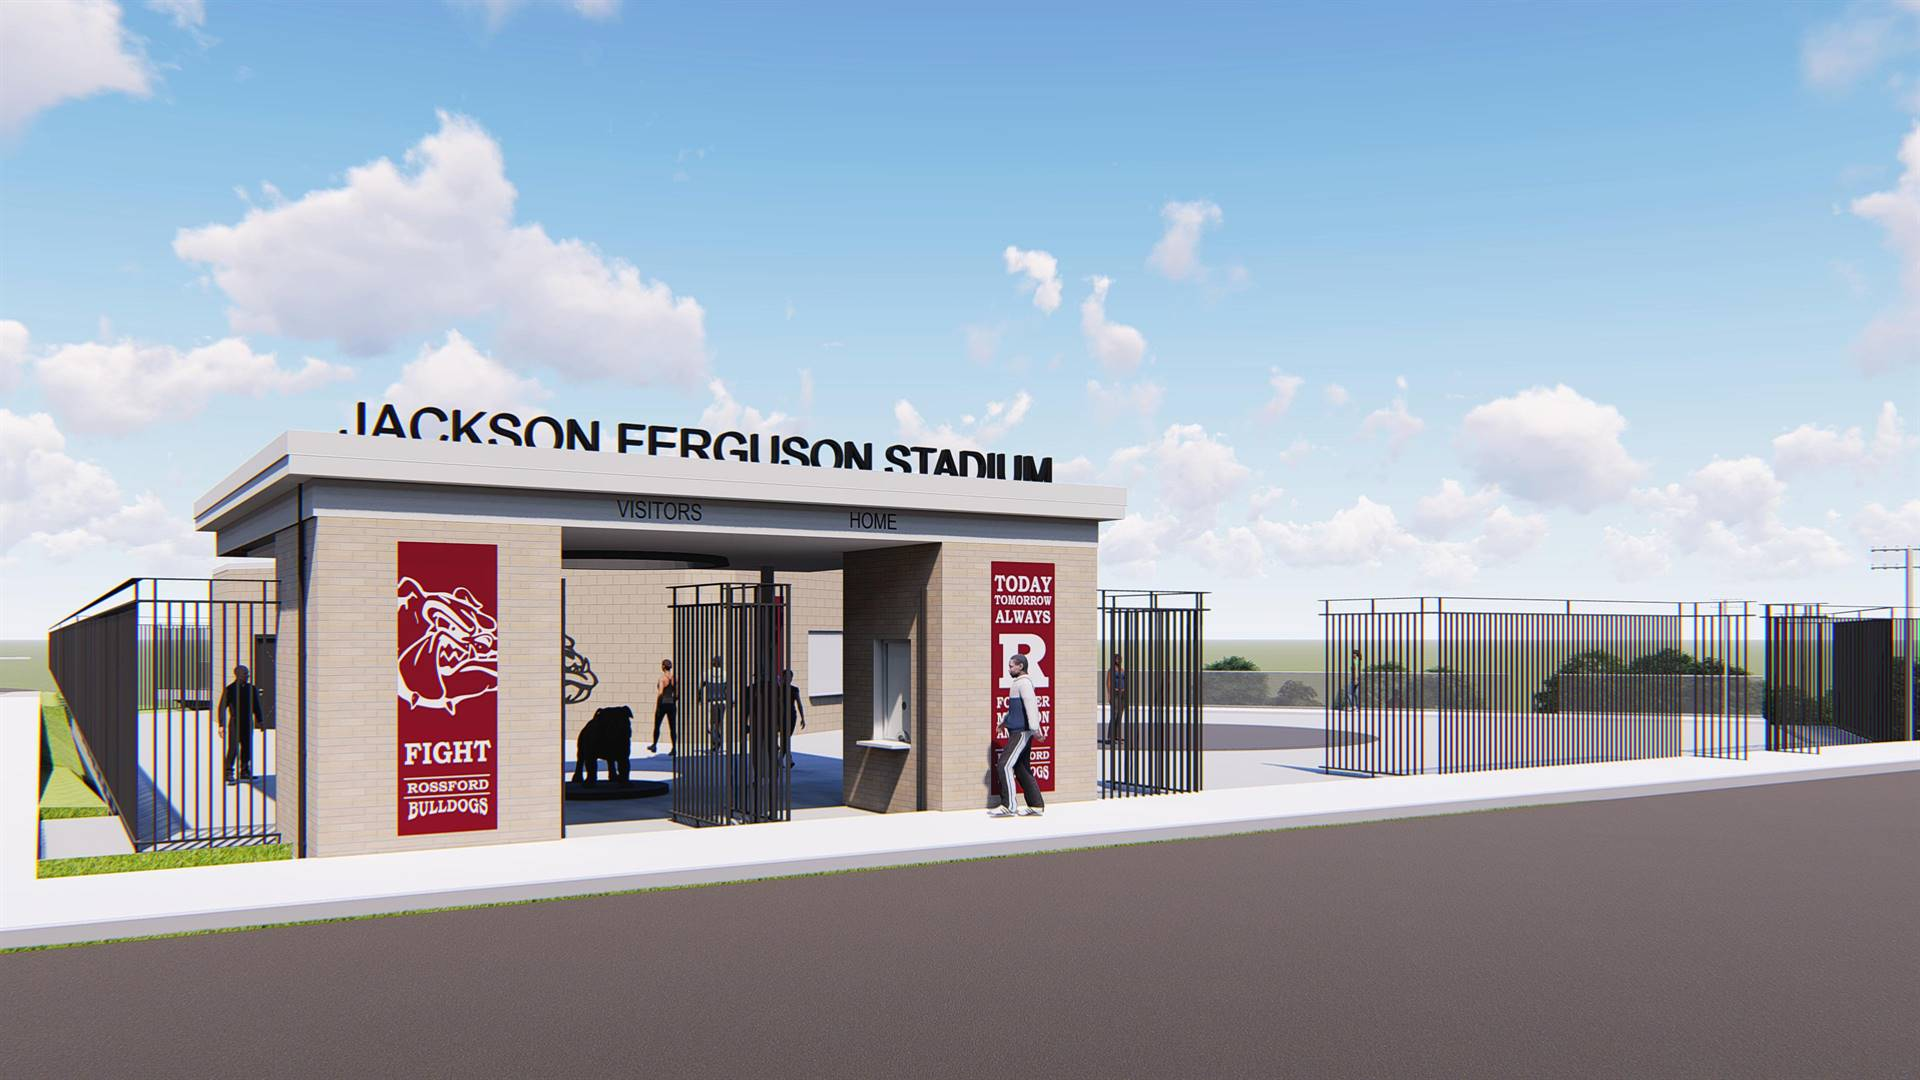 Entrance to Jackson Ferguson Stadium